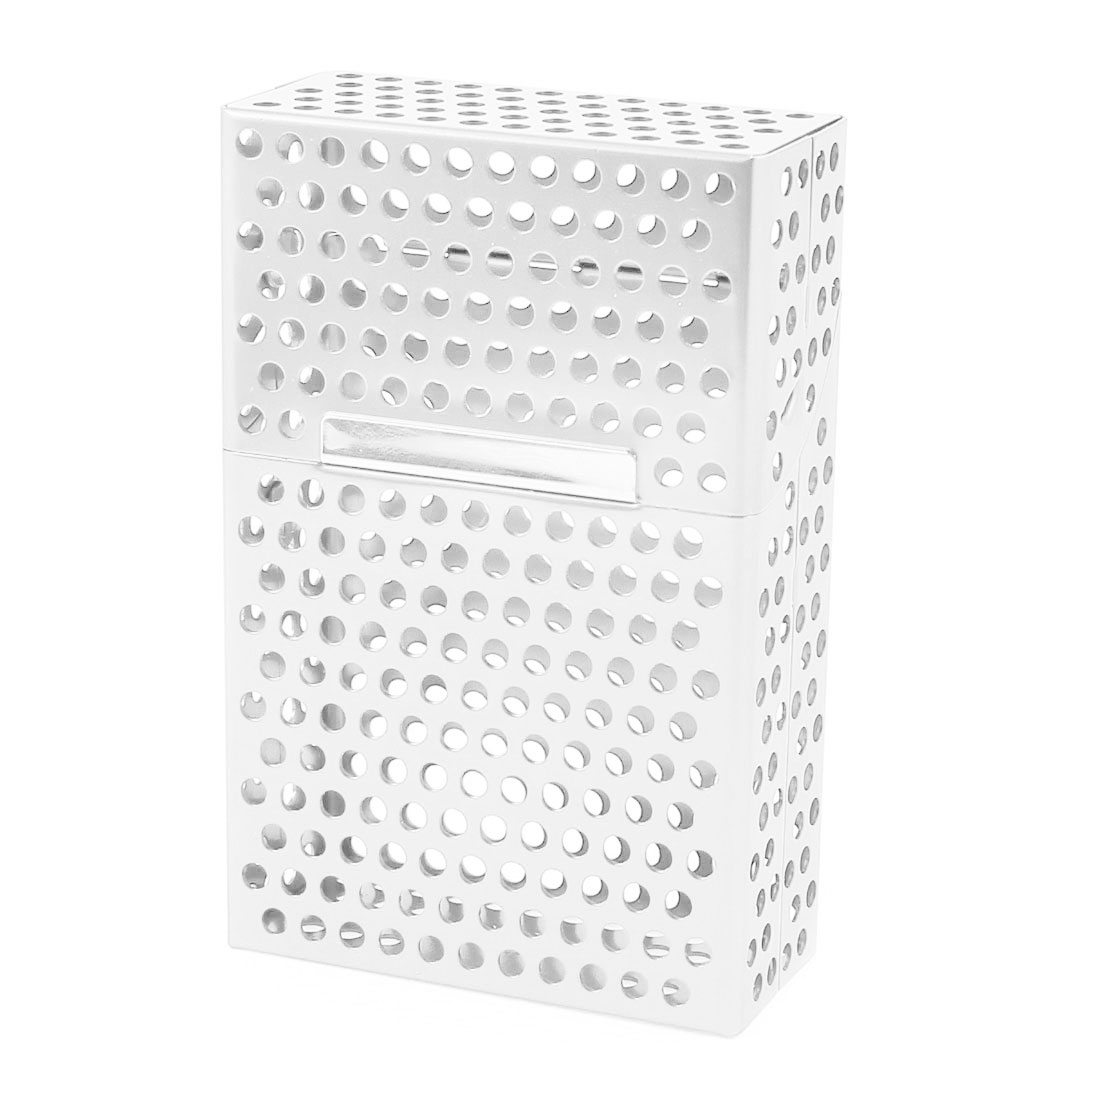 Silver Tone Magnet Perforated Rectangle Shape Aluminum Full Pack 20 Pieces Cigarette Case Holder